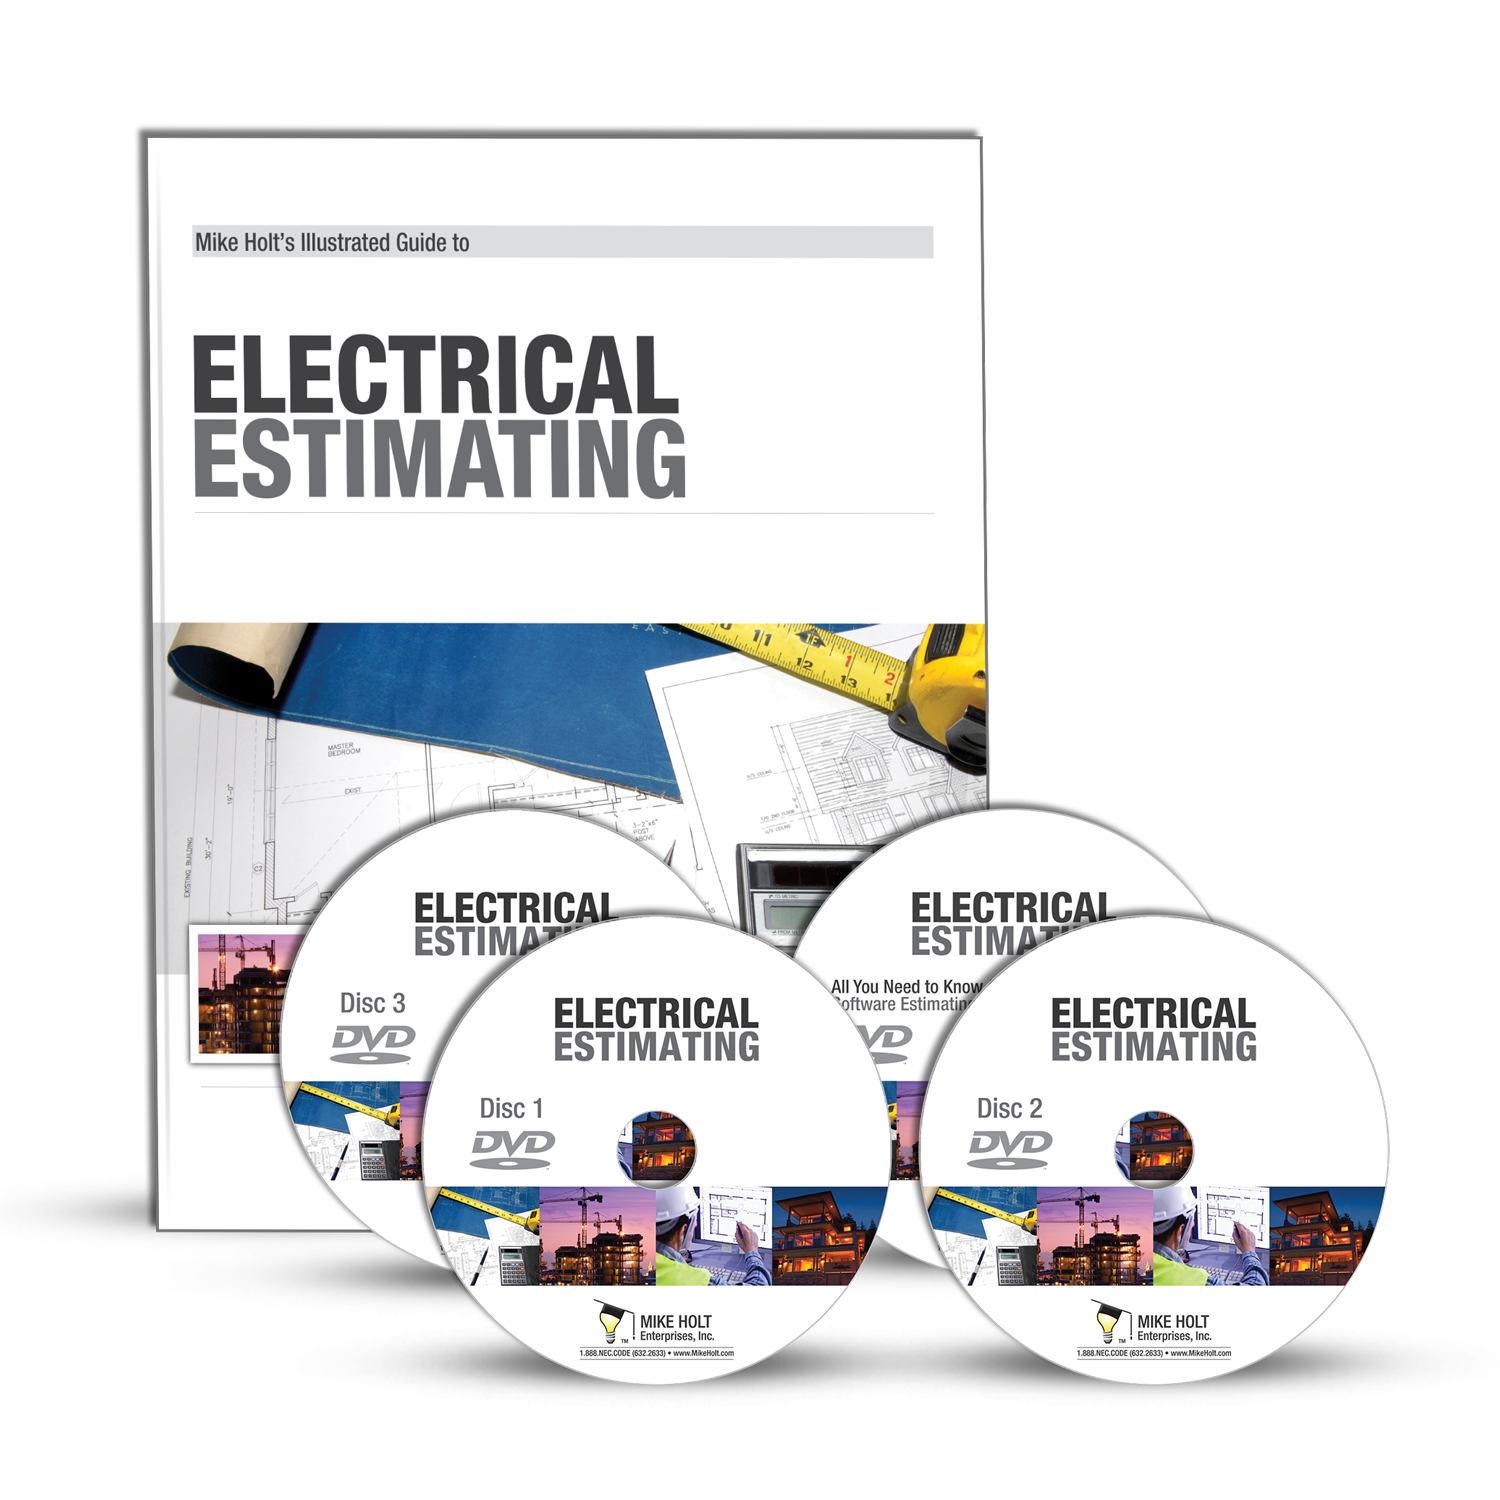 mike holt electrical estimating electrical estimating deluxe dvd rh mikeholt com electrical wiring residential dvd series Residential Wiring Symbols